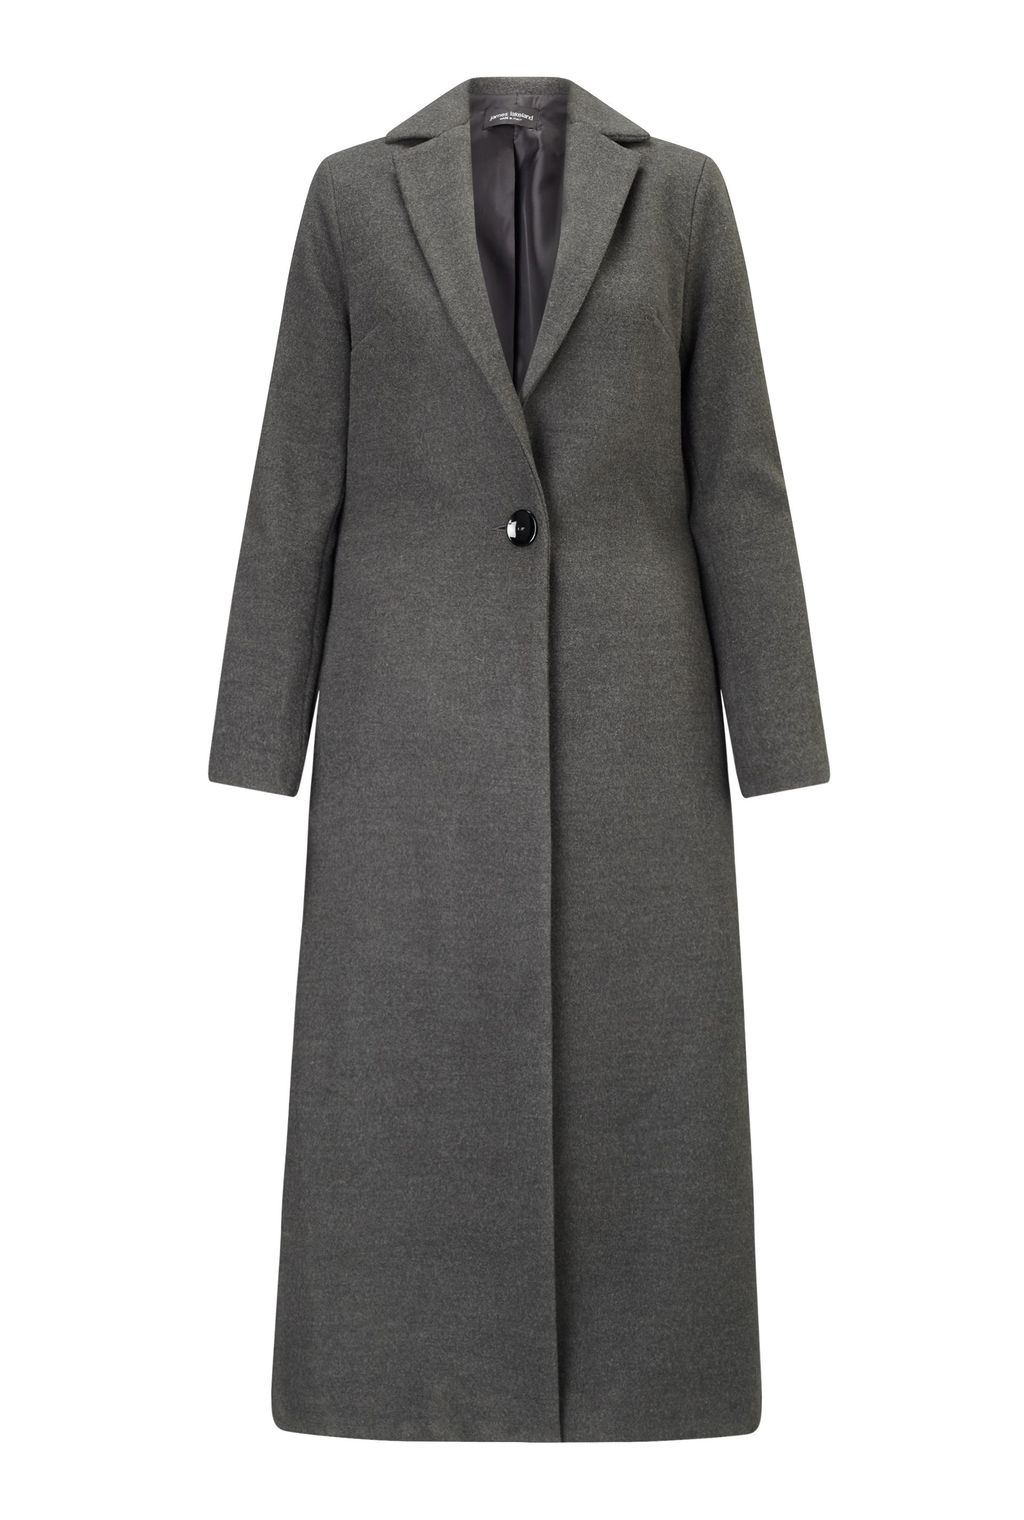 Long One Button Coat, Grey - pattern: plain; style: single breasted; collar: standard lapel/rever collar; length: calf length; predominant colour: charcoal; occasions: casual; fit: tailored/fitted; fibres: polyester/polyamide - stretch; sleeve length: long sleeve; sleeve style: standard; collar break: medium; pattern type: fabric; texture group: other - bulky/heavy; season: a/w 2016